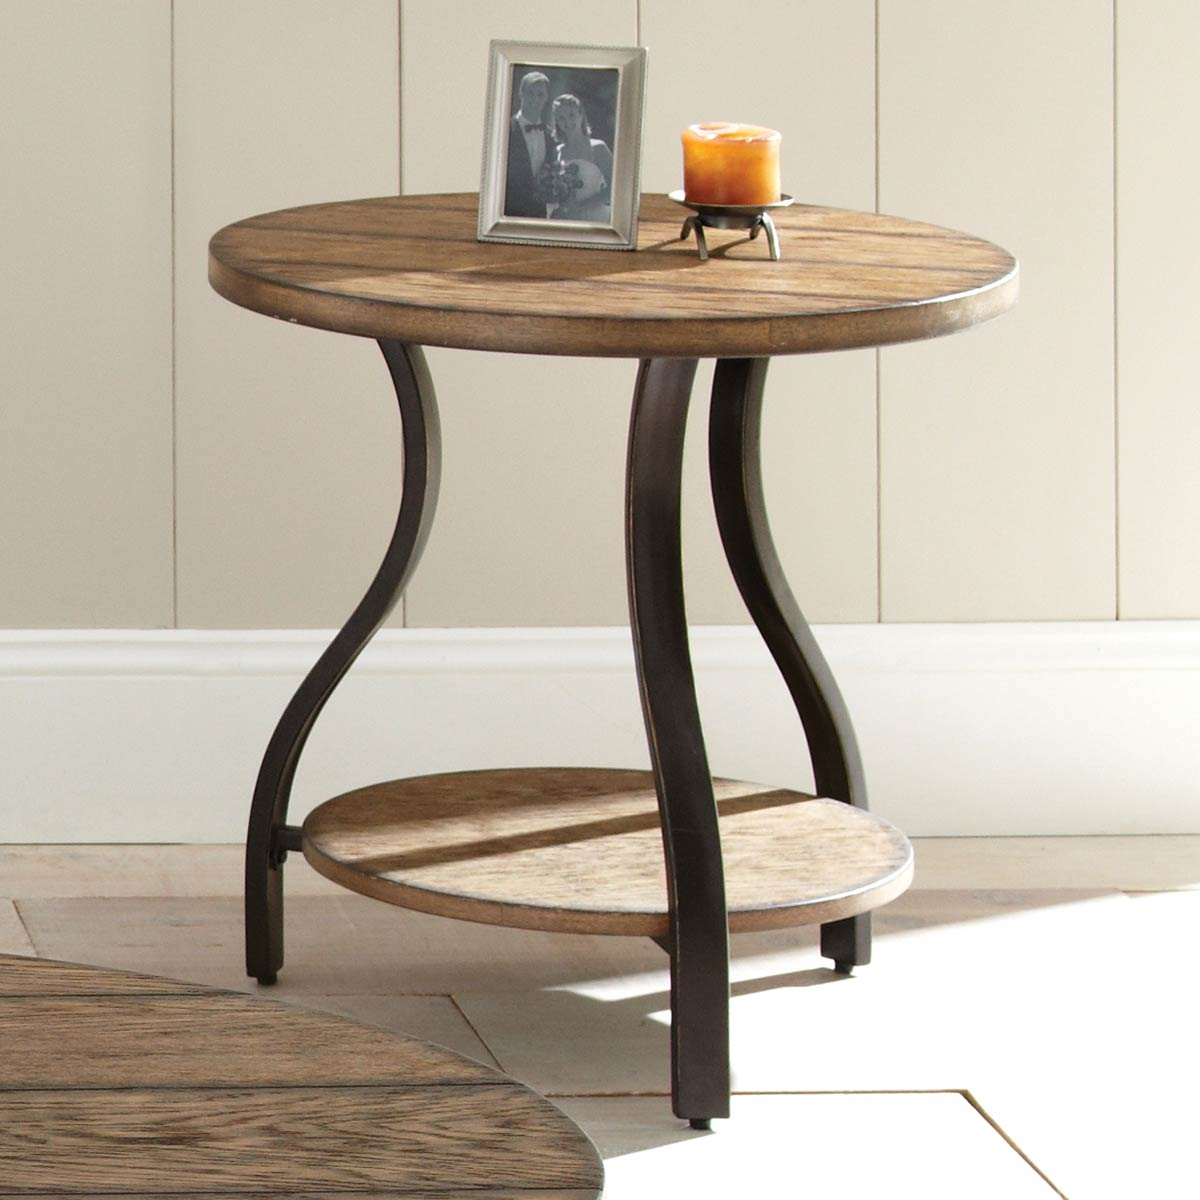 denise round side table light oak wood top metal base